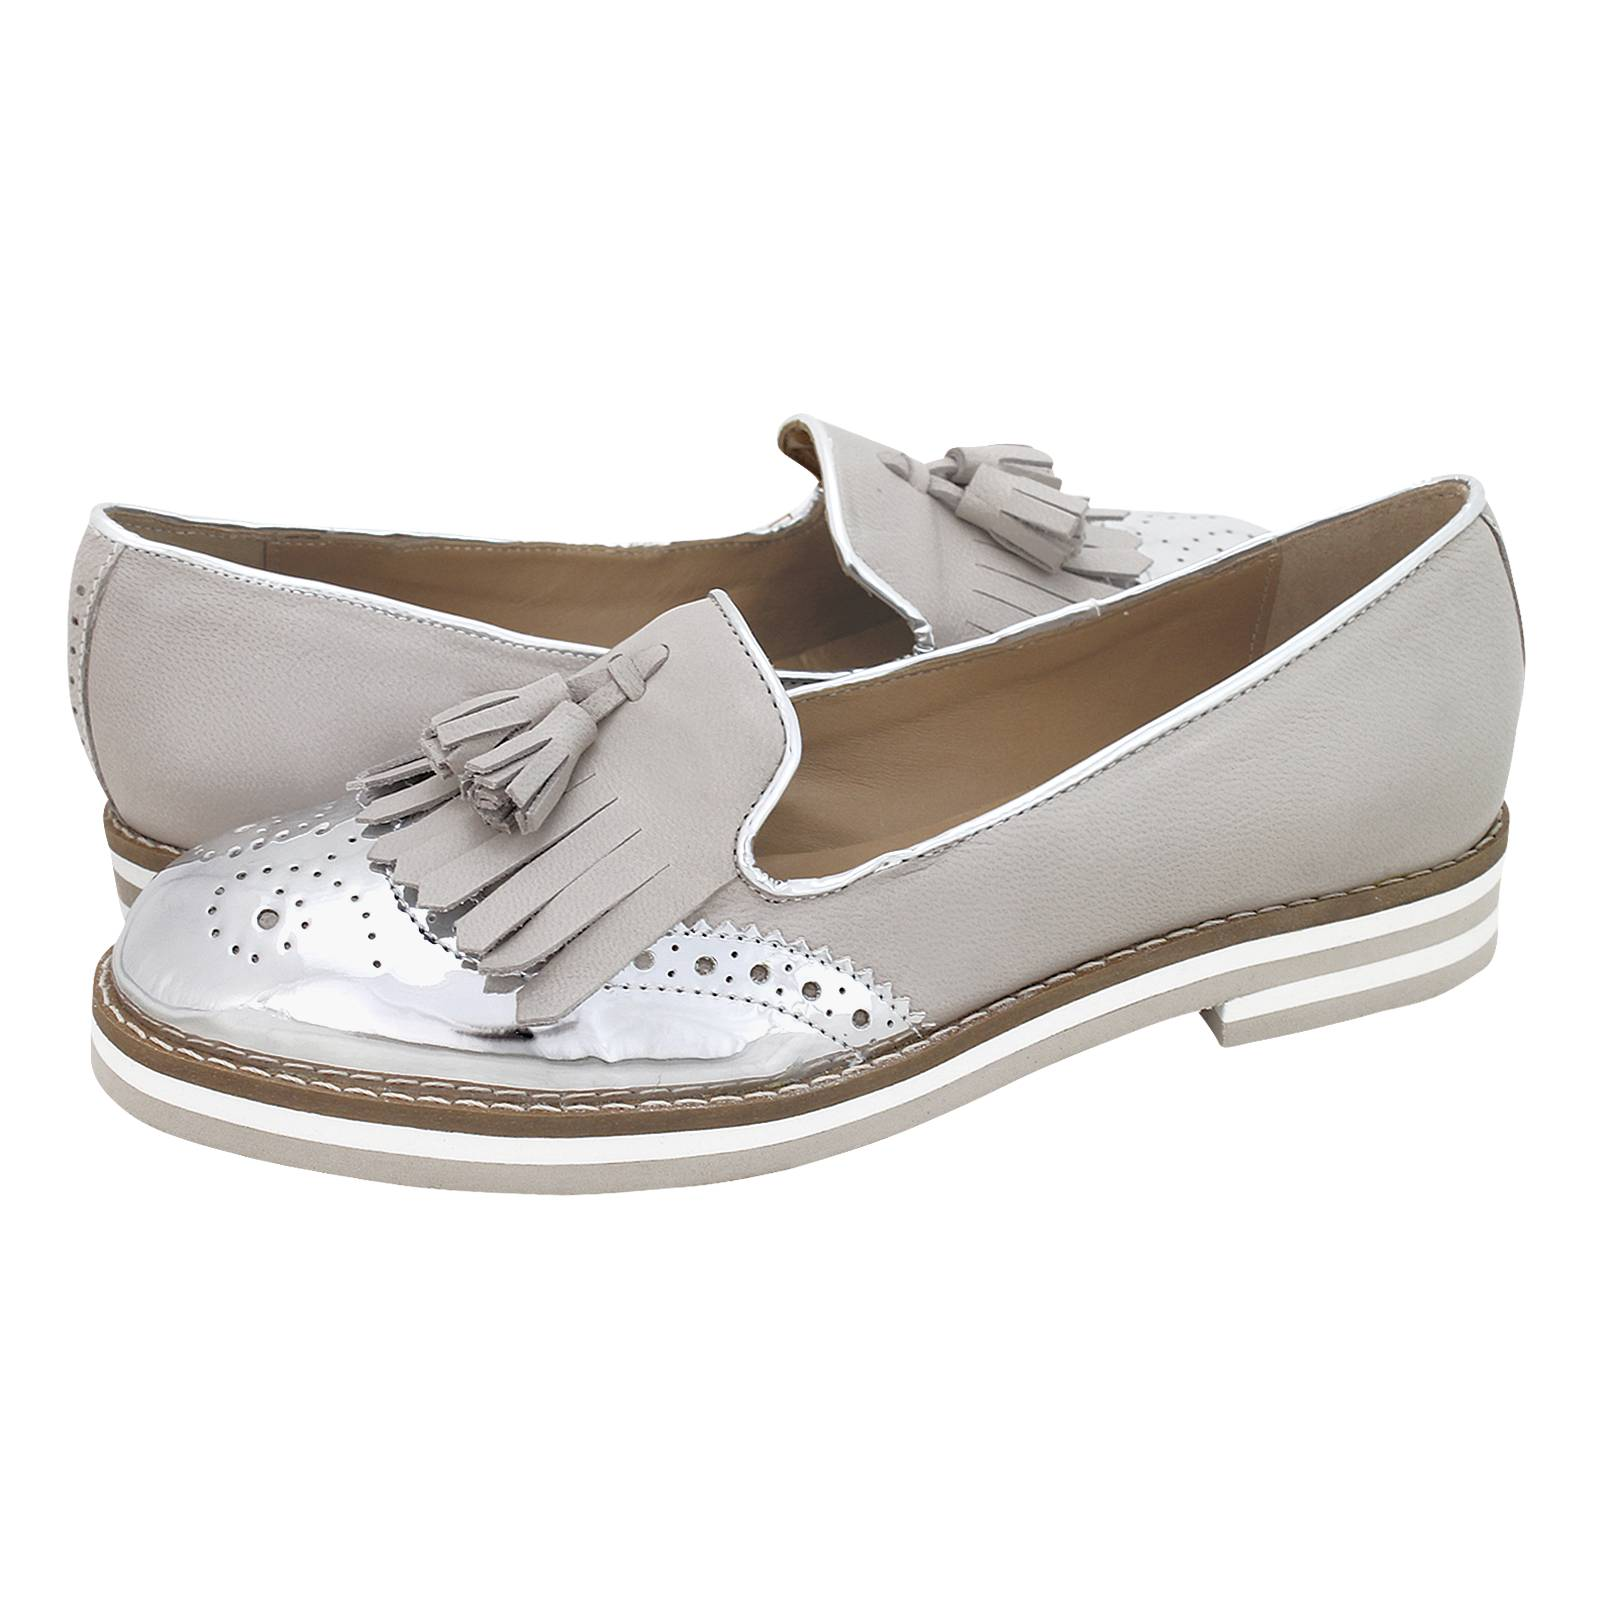 Cardinal - Esthissis Women s Oxford shoes made of leather - Gianna ... 1730853f8fc